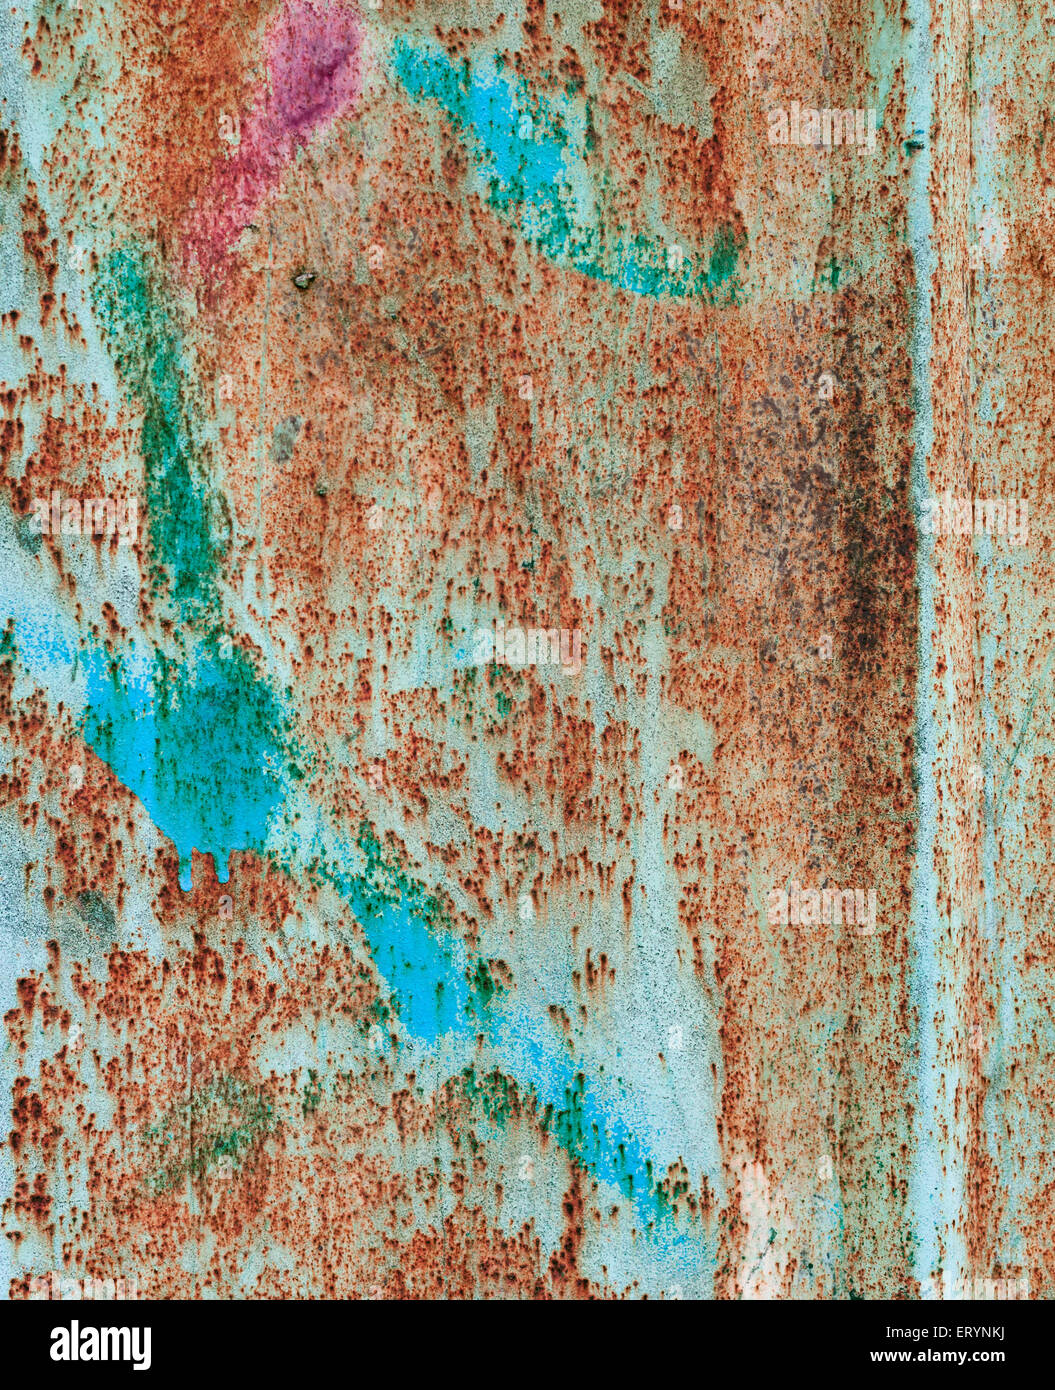 abstract corroded colorful wallpaper grunge background iron rusty